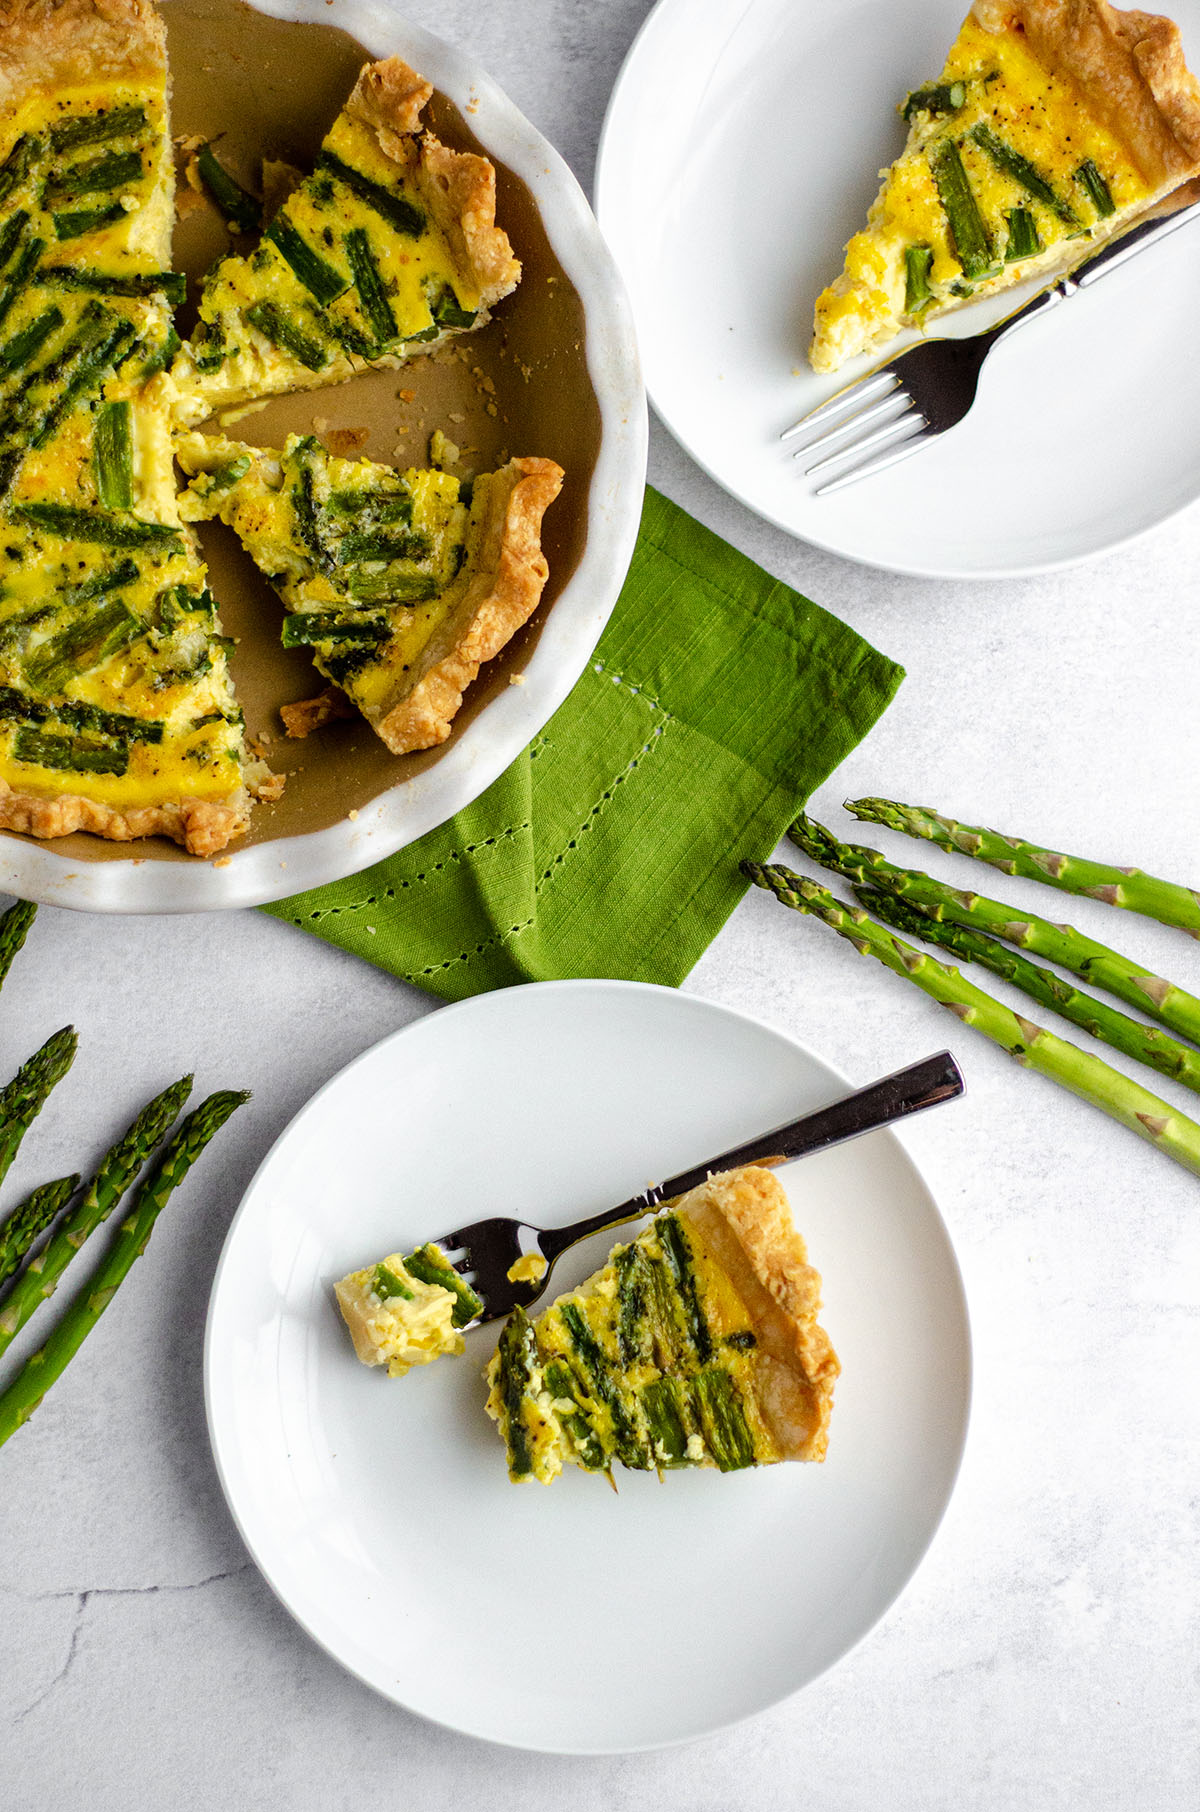 A simple egg quiche loaded up with asparagus and cheese. Pair with my favorite homemade pie crust or go crustless!